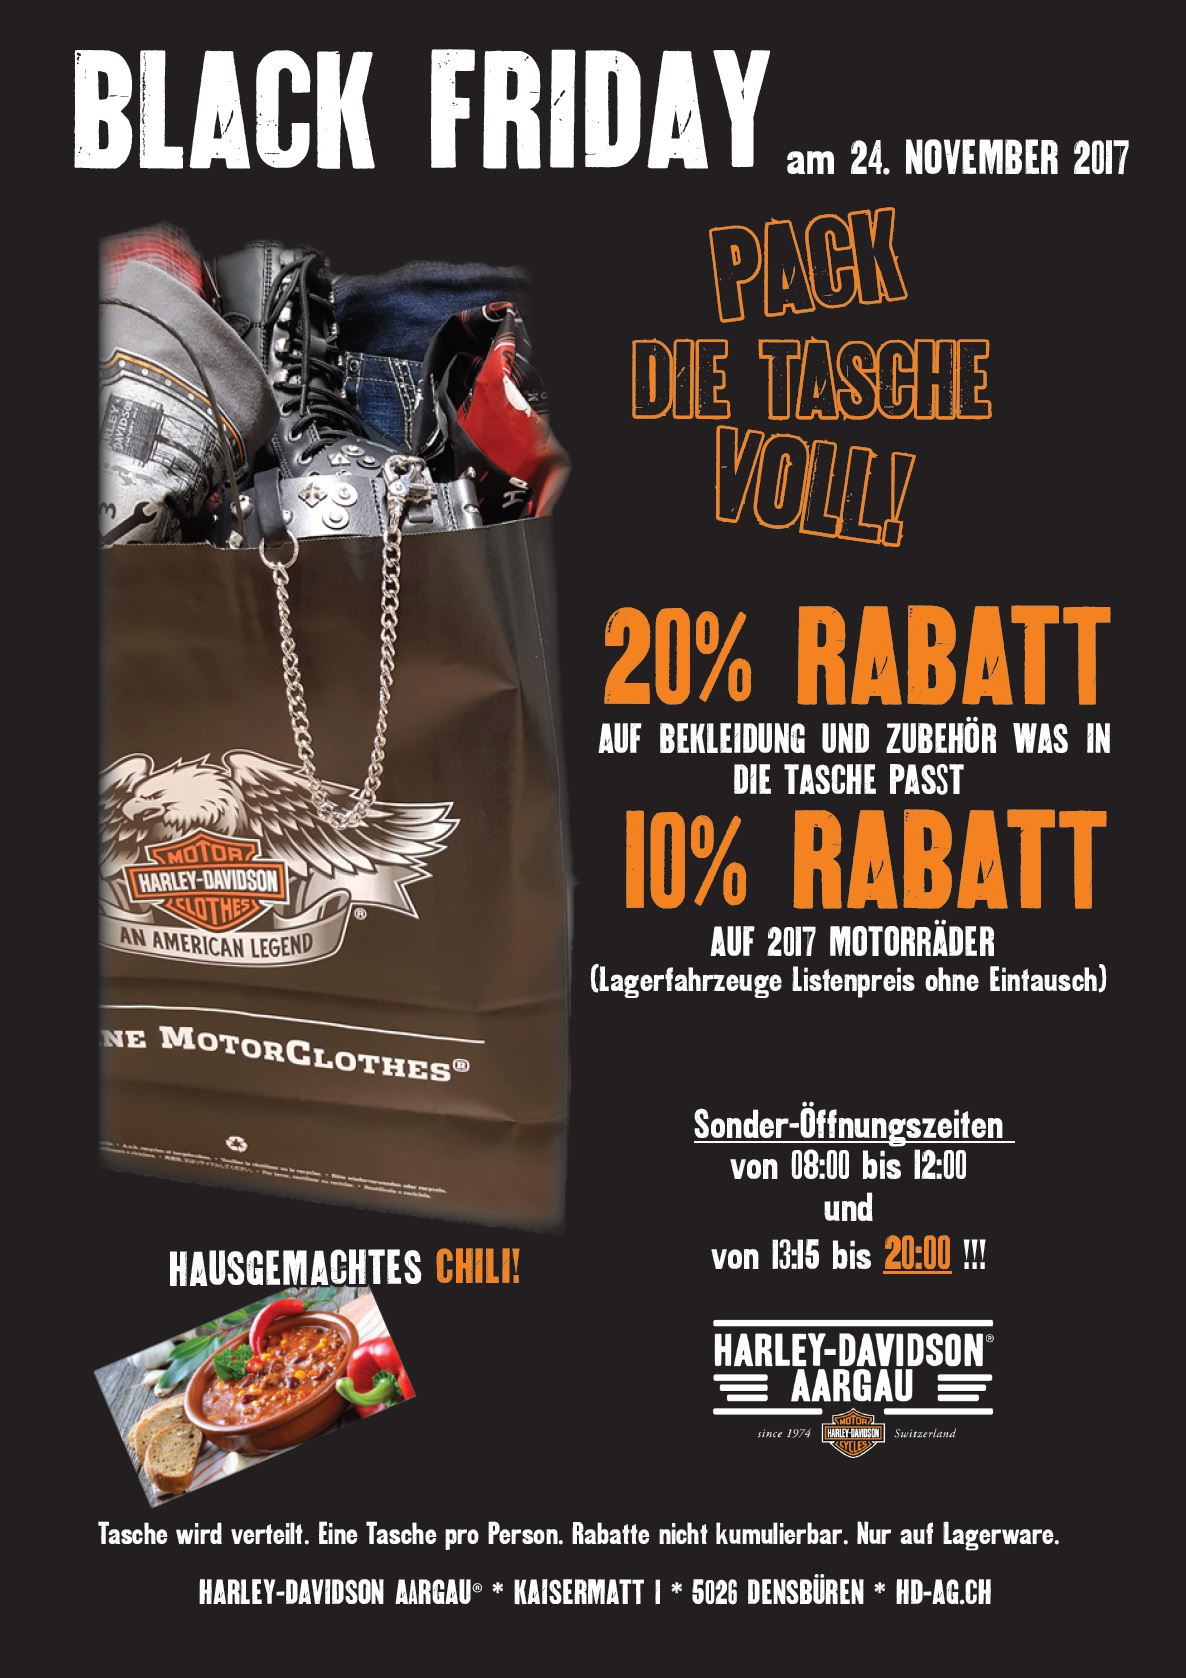 Black Friday Angebot Harley Davidson Aargau Mit 20 Rabatt Black Friday